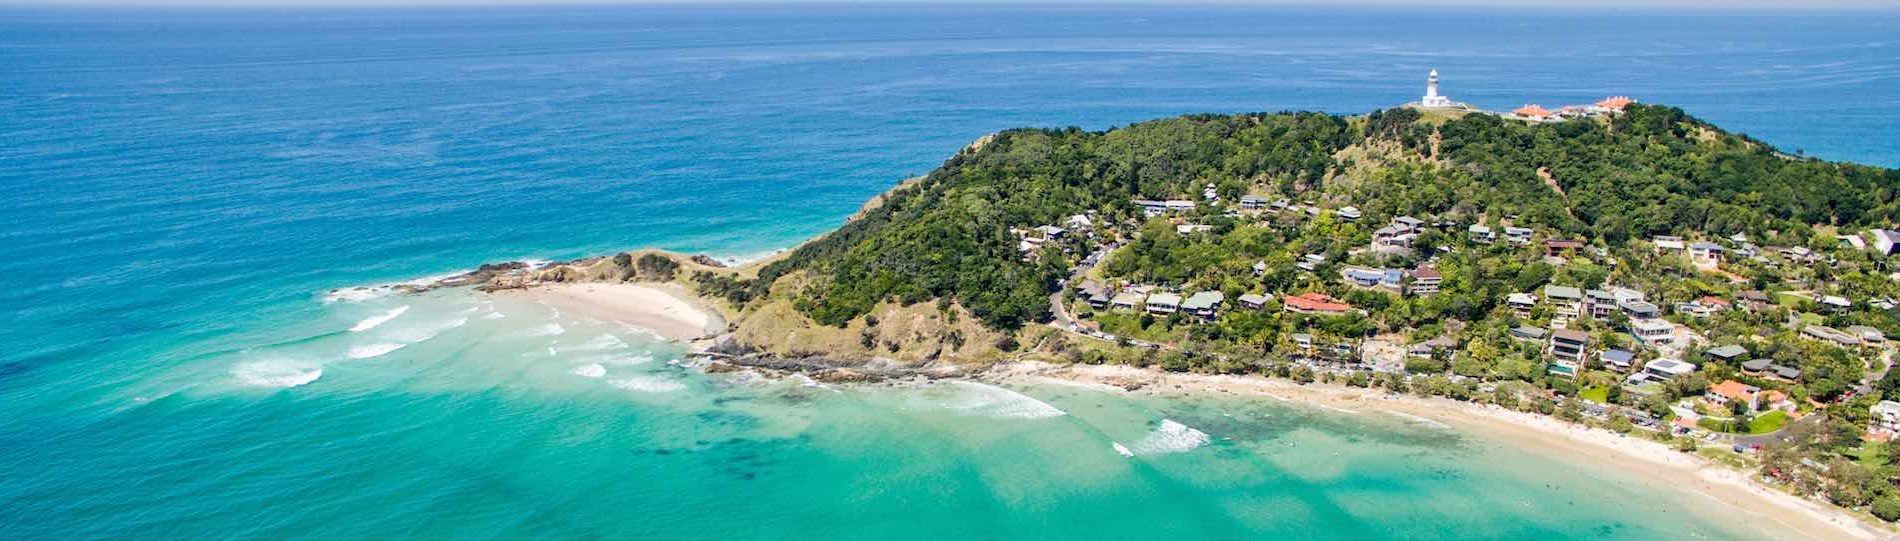 byron bay bucks party location